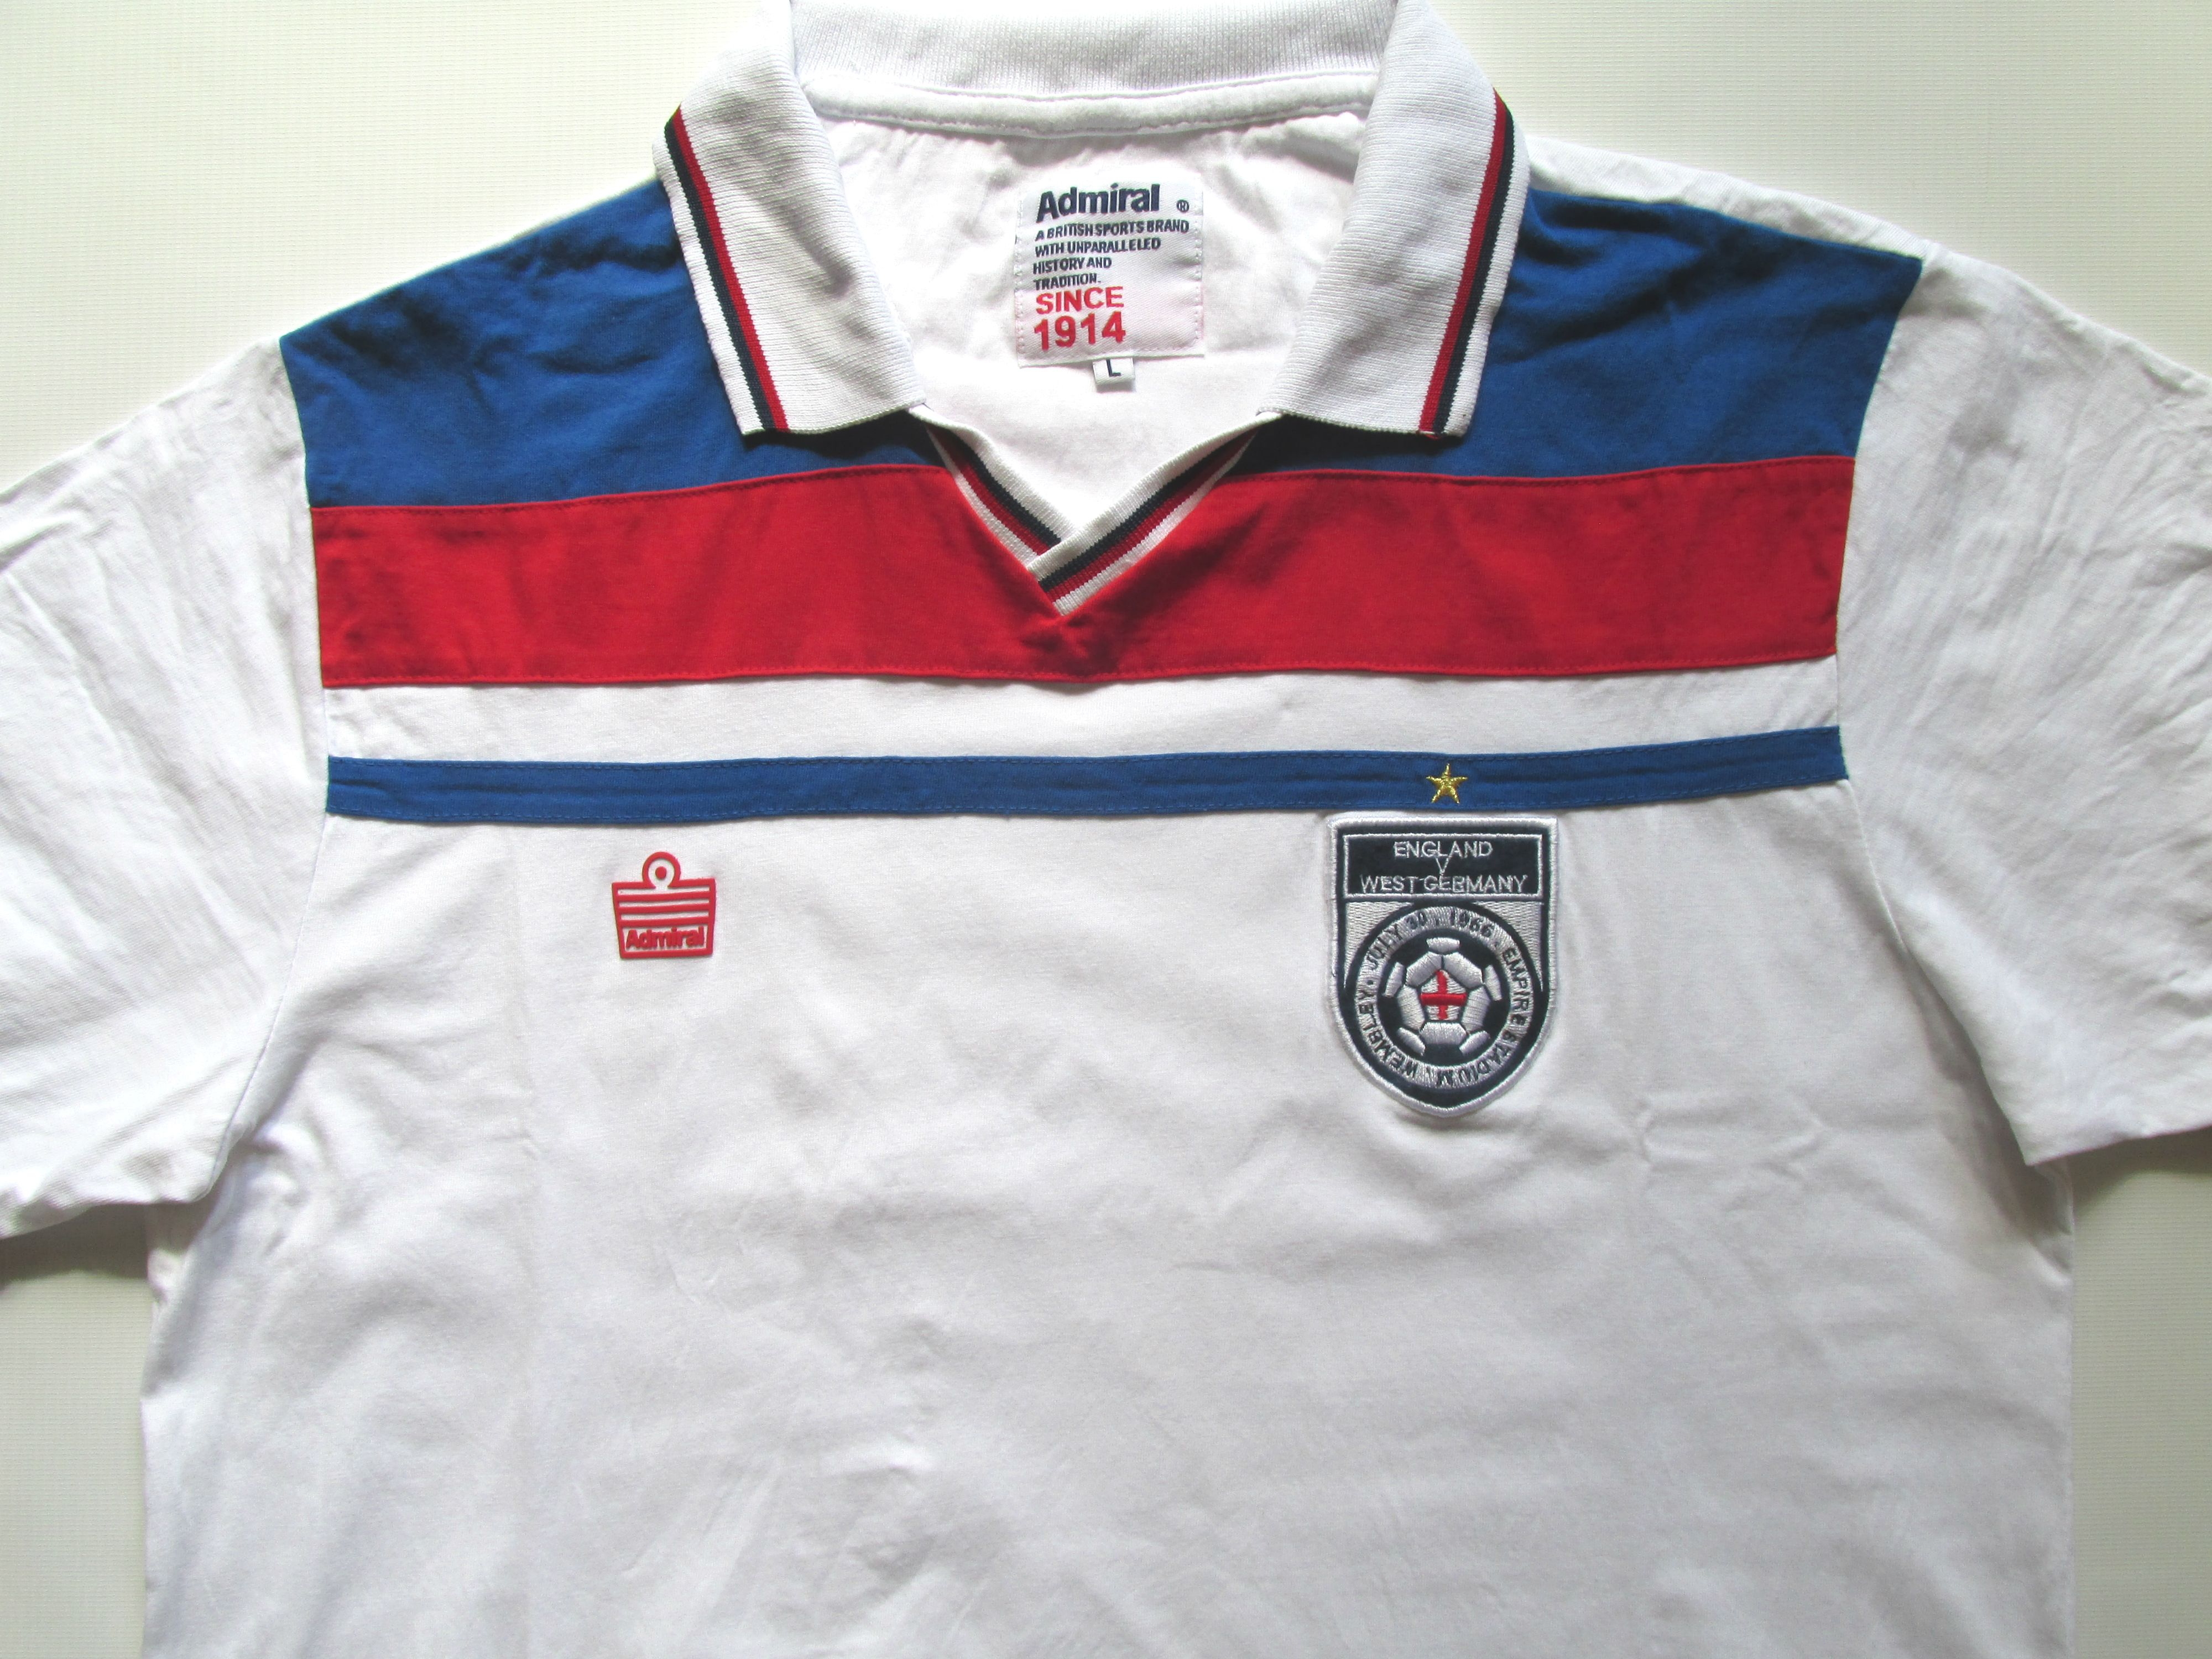 England Vs West Germany 1966 World Cup Football Shirt By Admiral Jersey Soccer Vintage Retro Worldcup Worldcup66 60s Vin Shirts 1966 World Cup Football Shirts